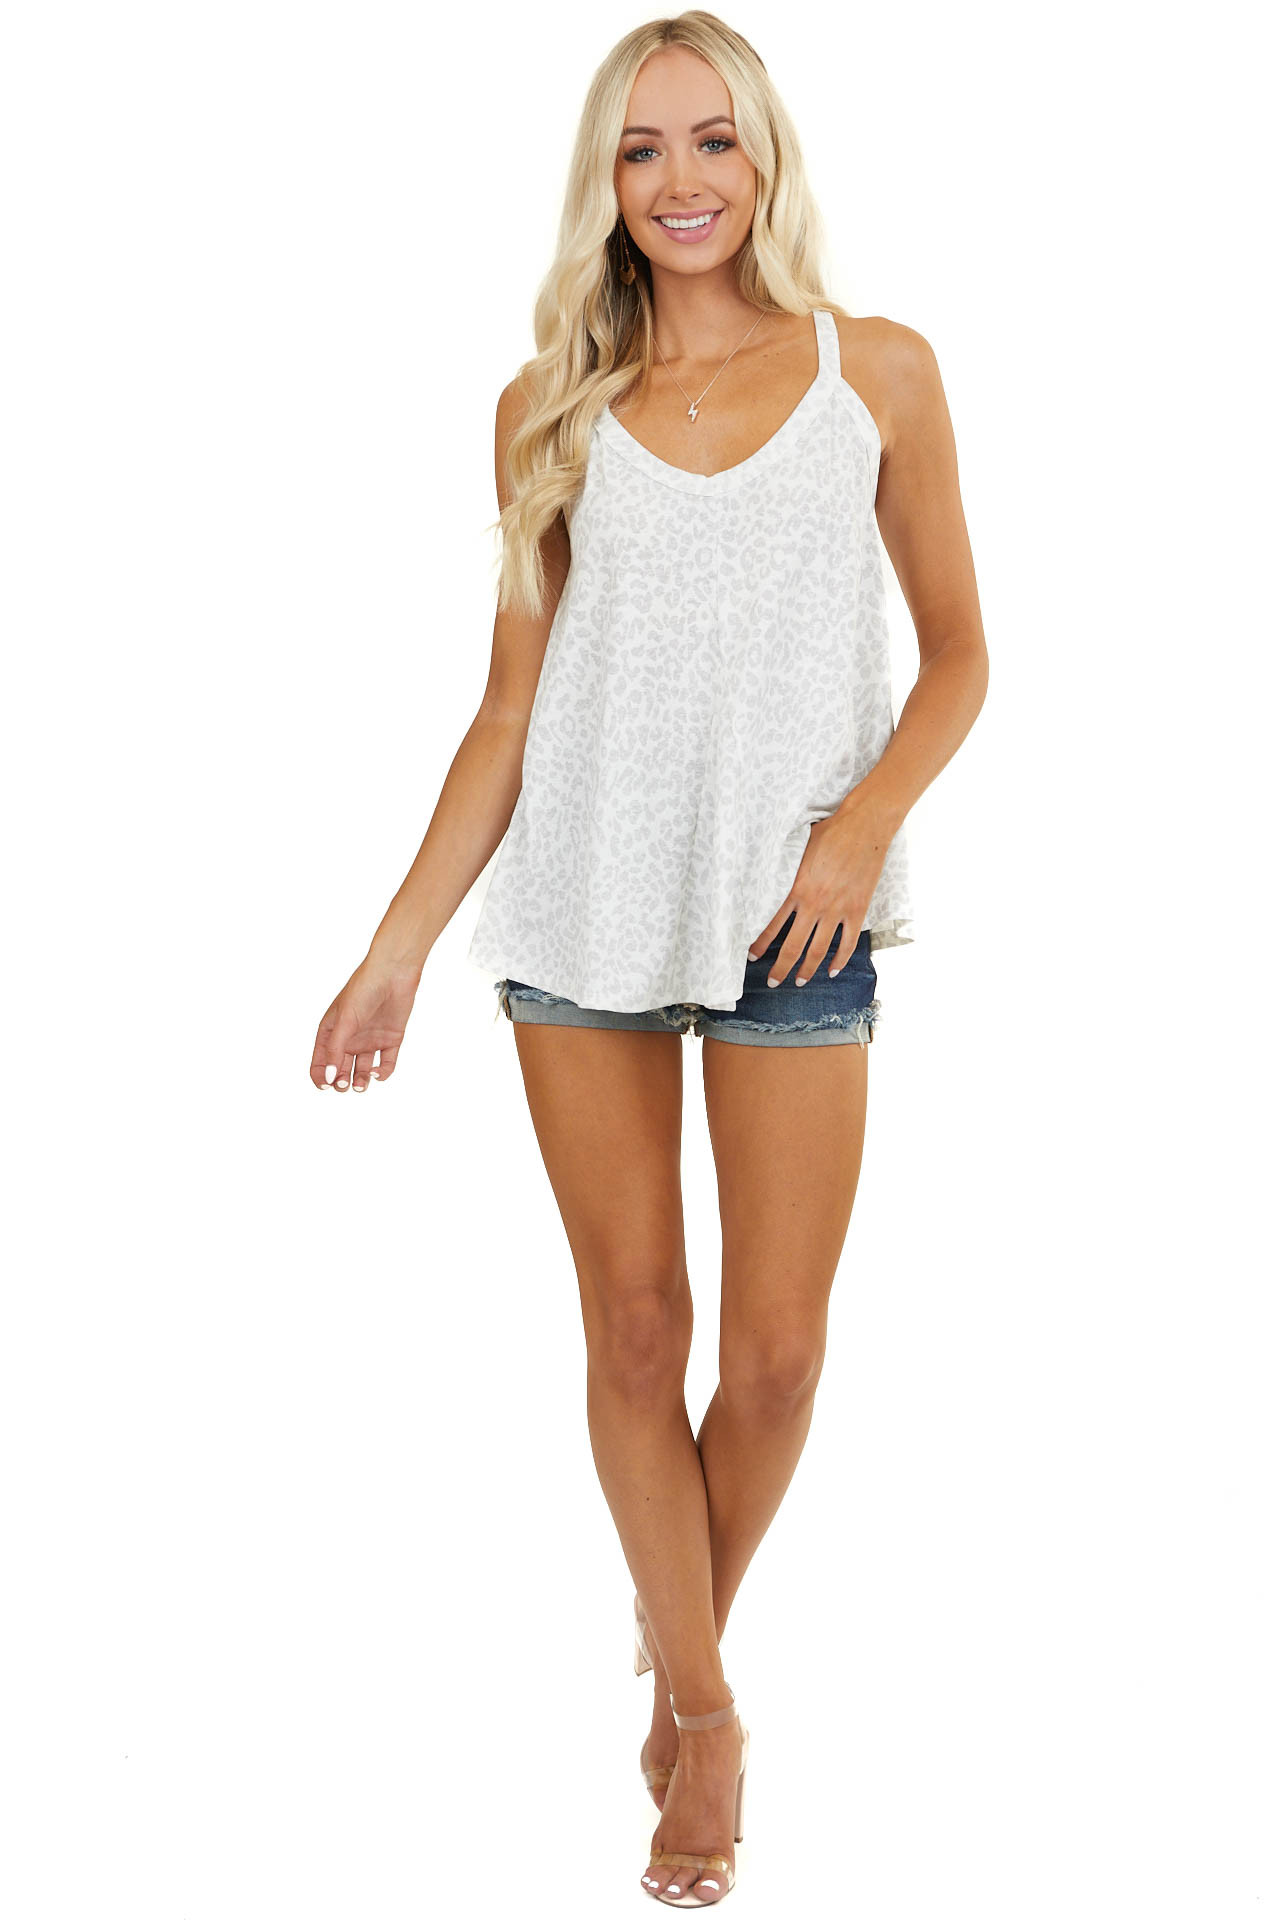 Ivory and Grey Leopard Print Racerback Knit Tank Top